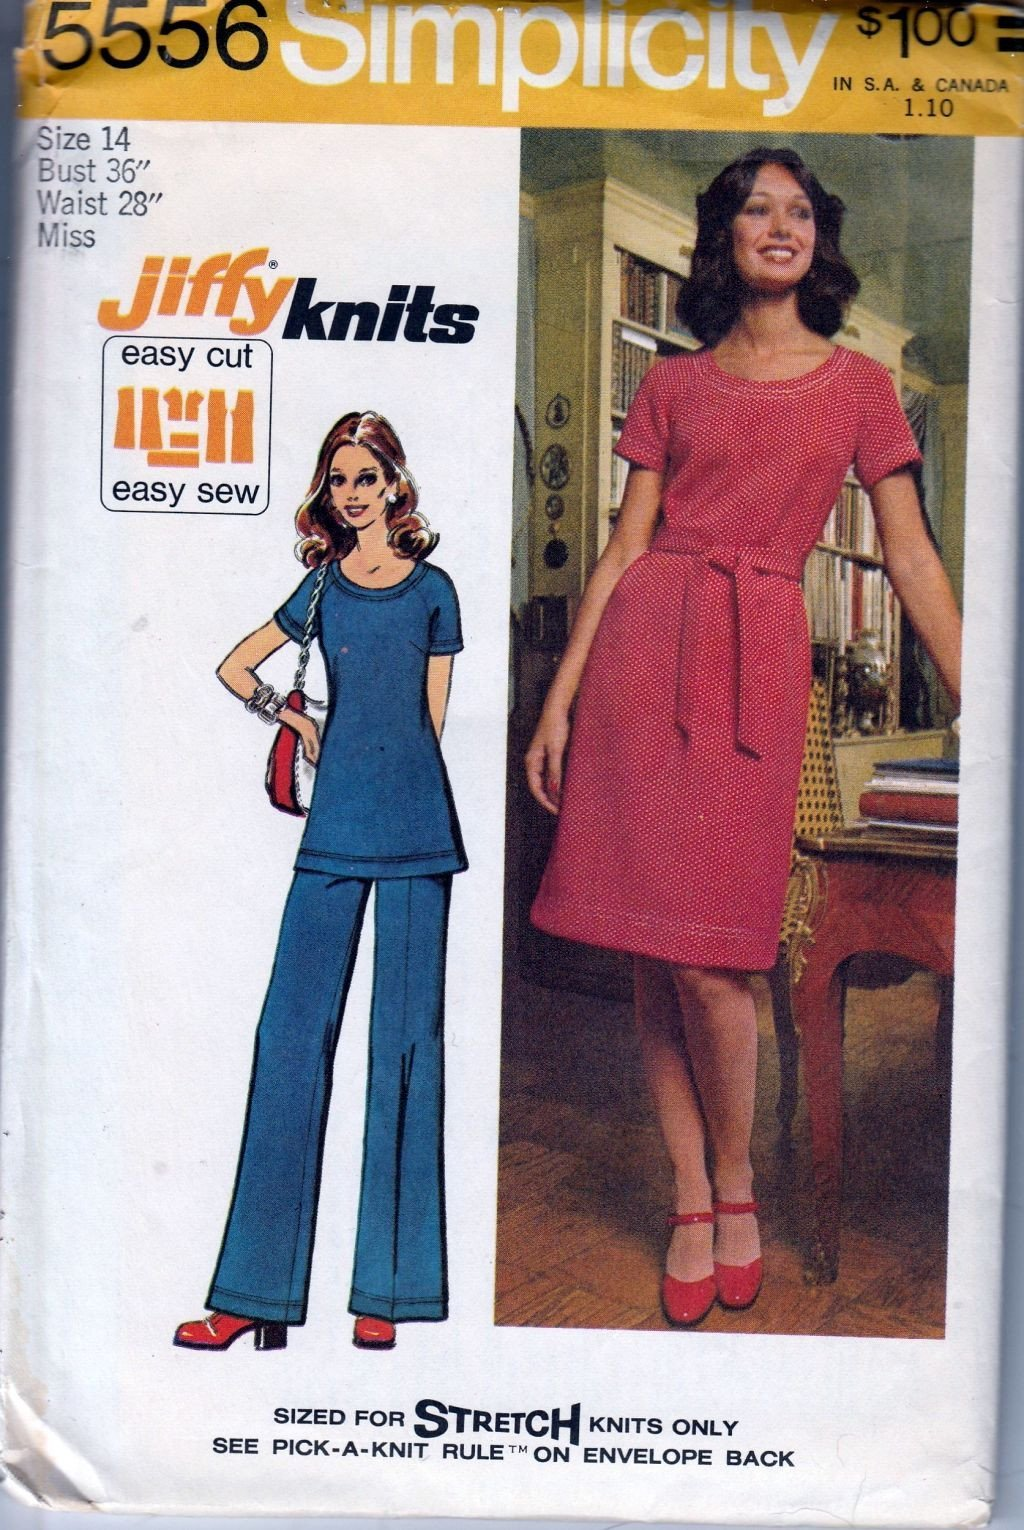 Simplicity 5556 Vintage 1970's Sewing Pattern Ladies Dress Top Pants Jiffy Knits - VintageStitching - Vintage Sewing Patterns